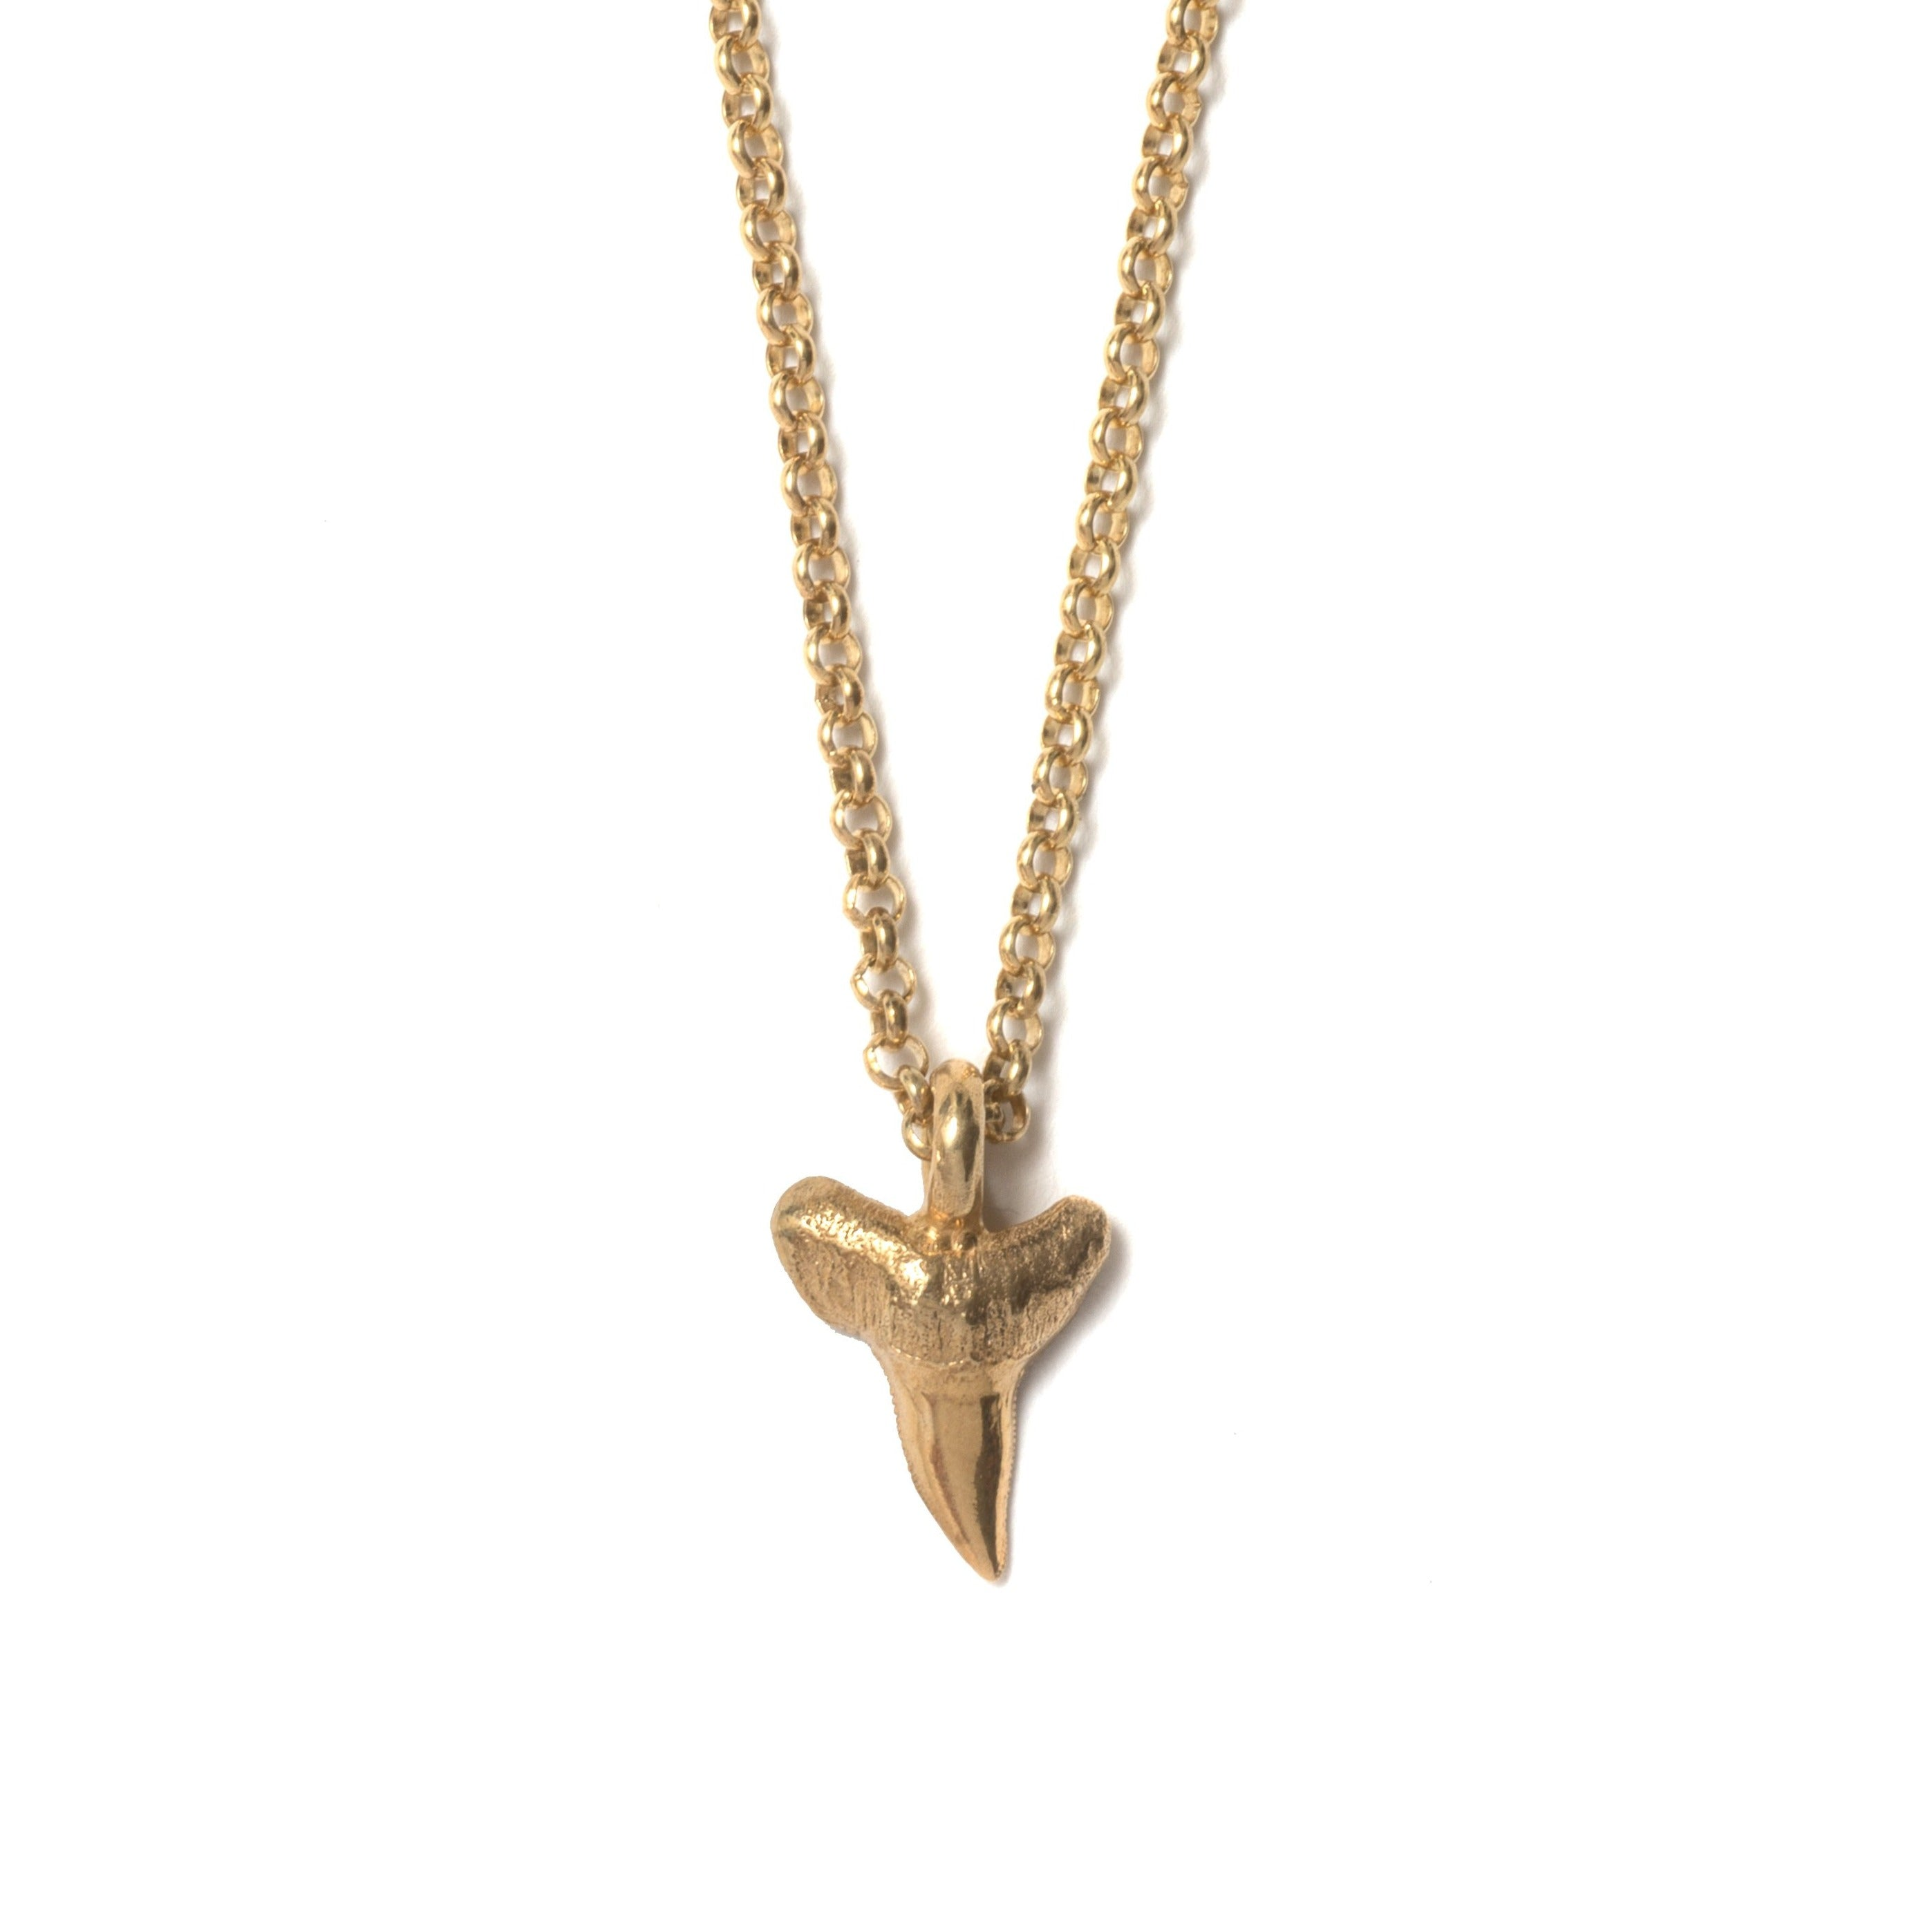 Tiny sharks tooth necklace ~ Gold